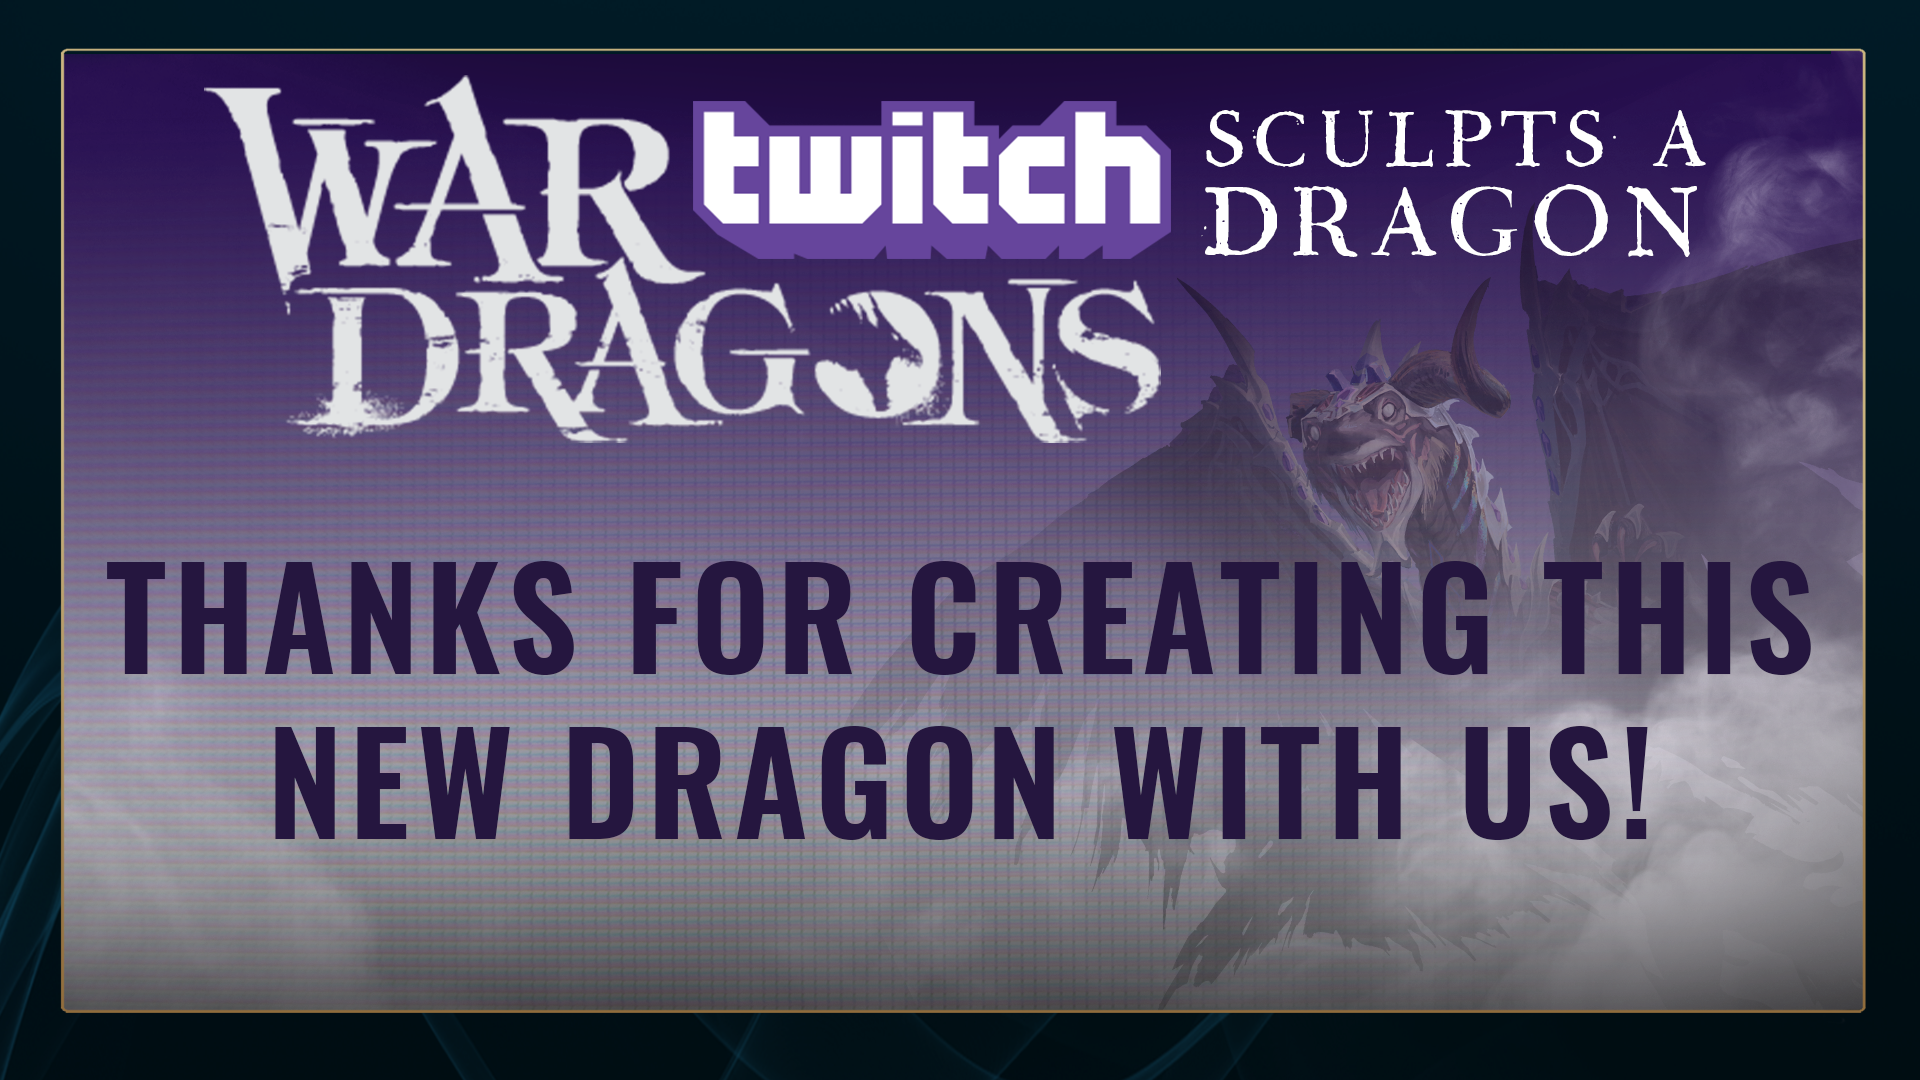 Twitch Sculpts a Dragon - Thank You Interstitial